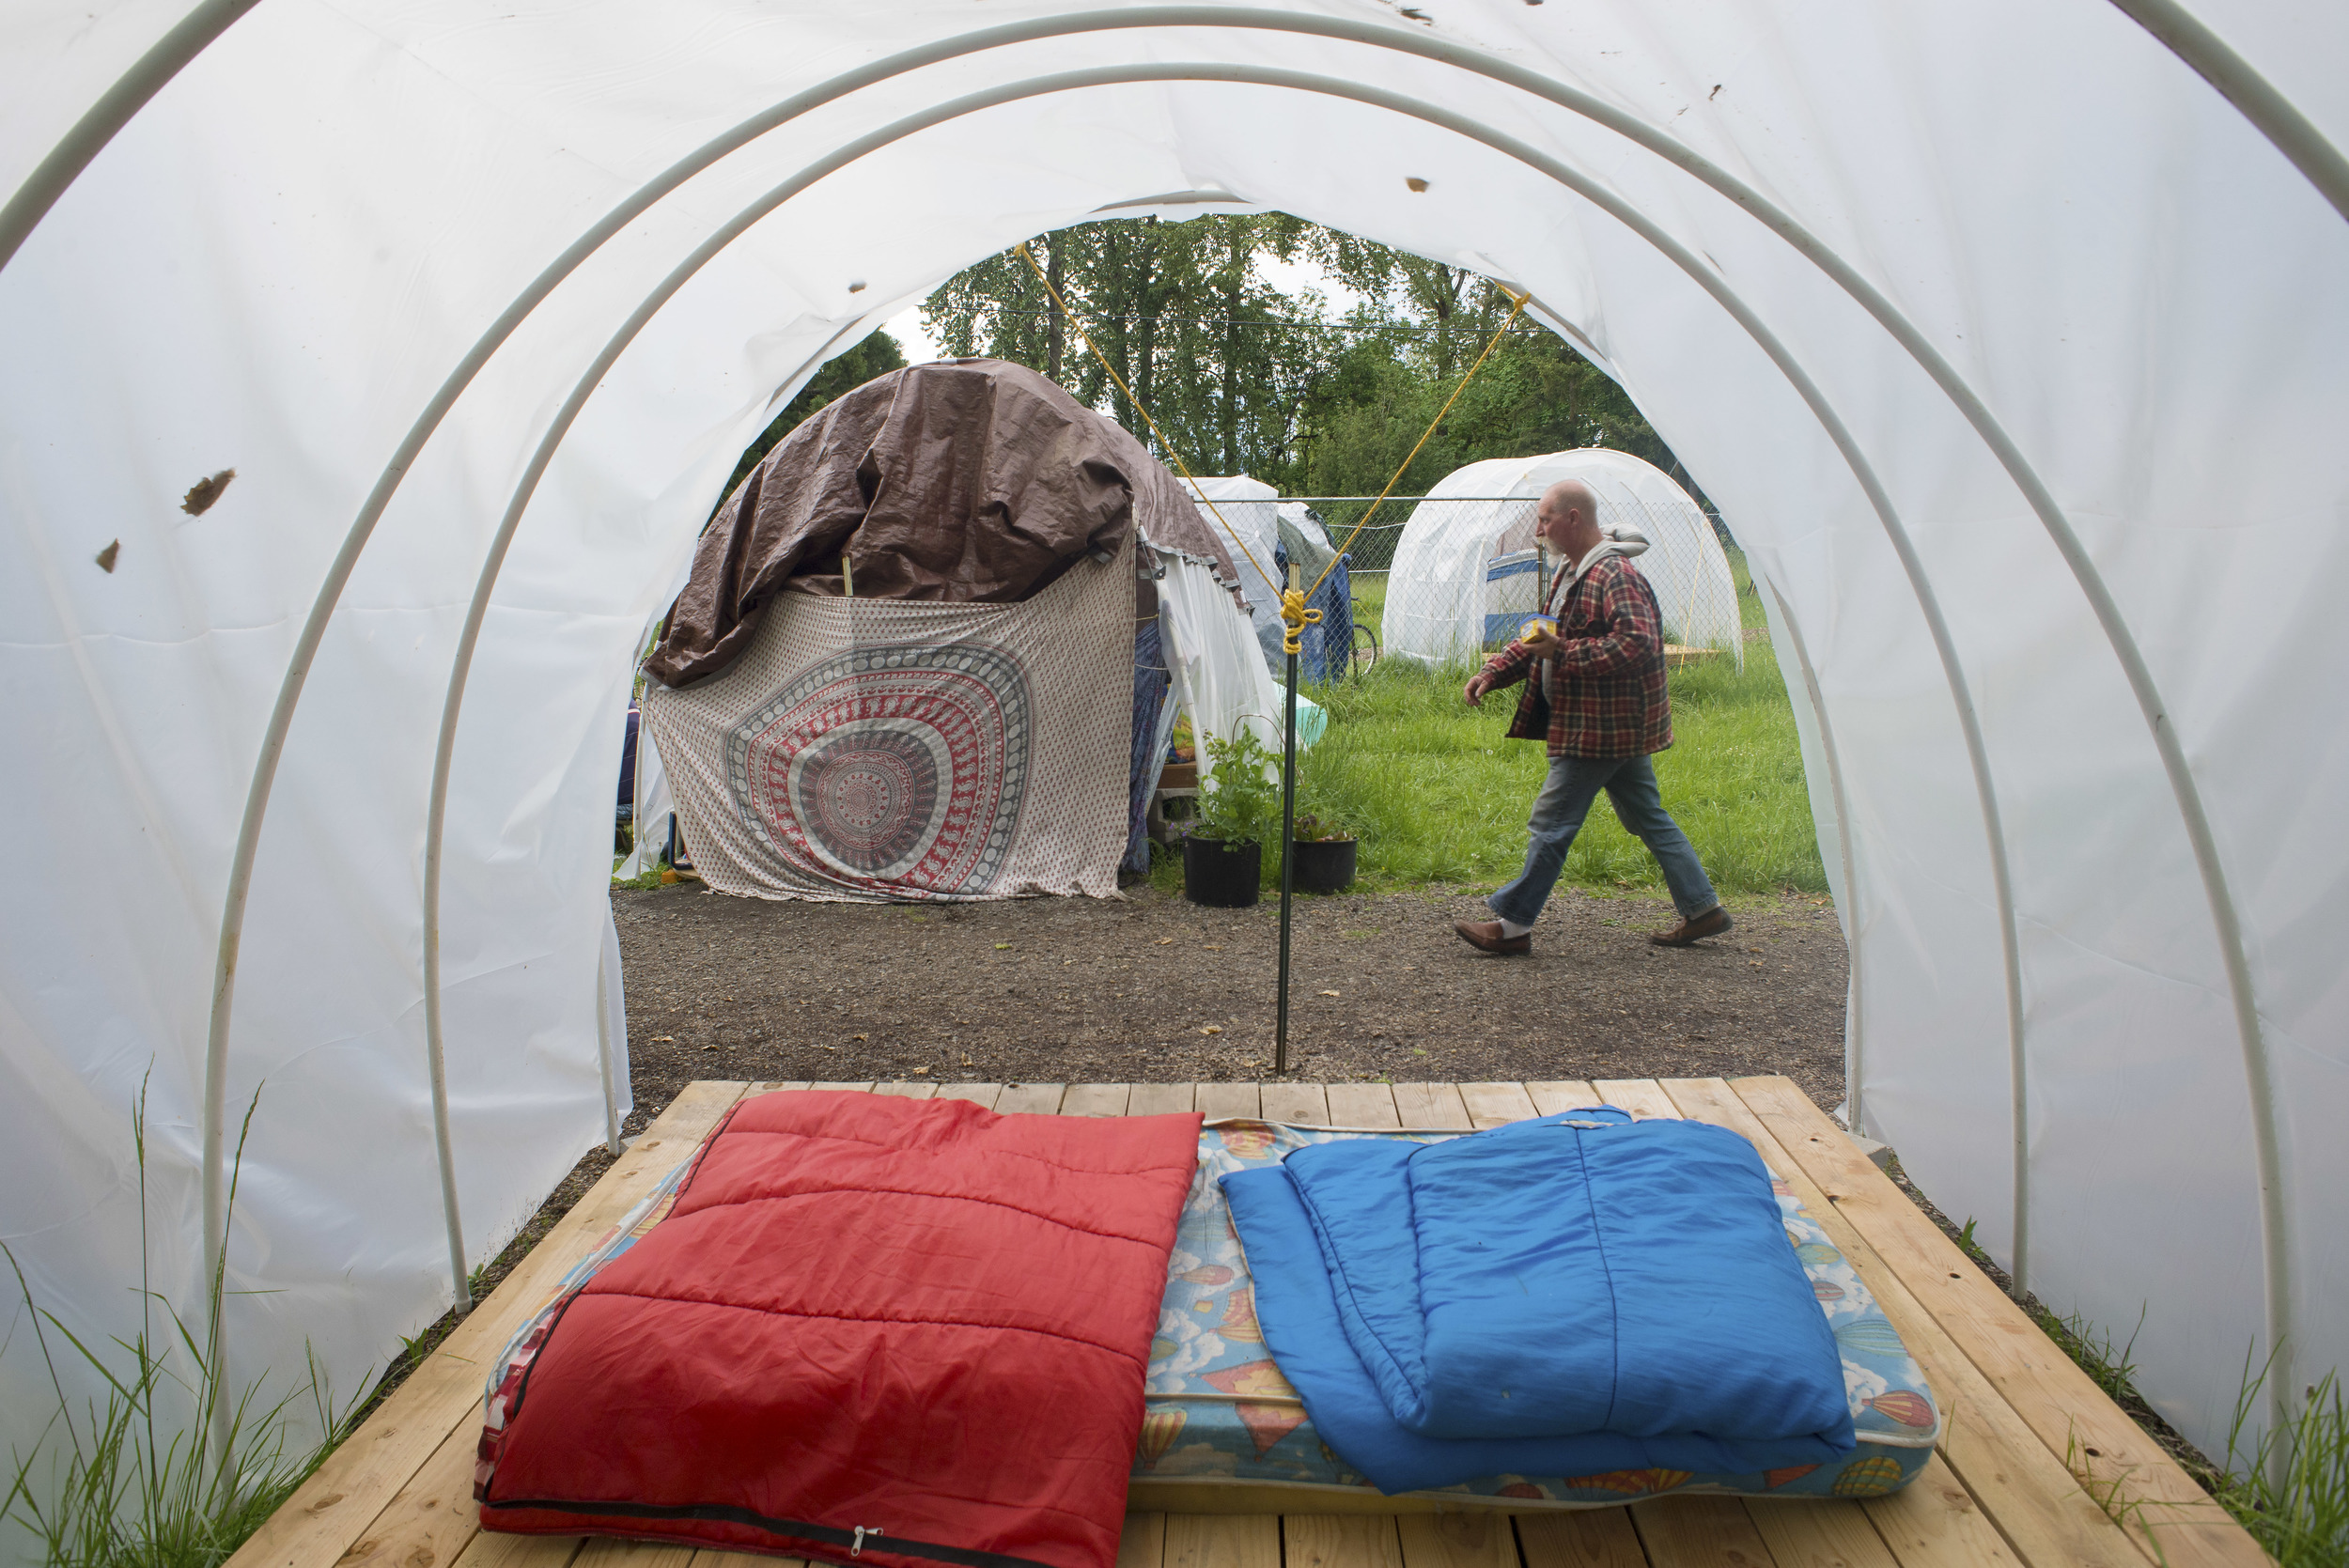 Eugene, Ore. - Mike Myers, site manager and resident of the Nightingale Health Sanctuary, helps maintain rules and structure within the camp. By: Debra Josephson